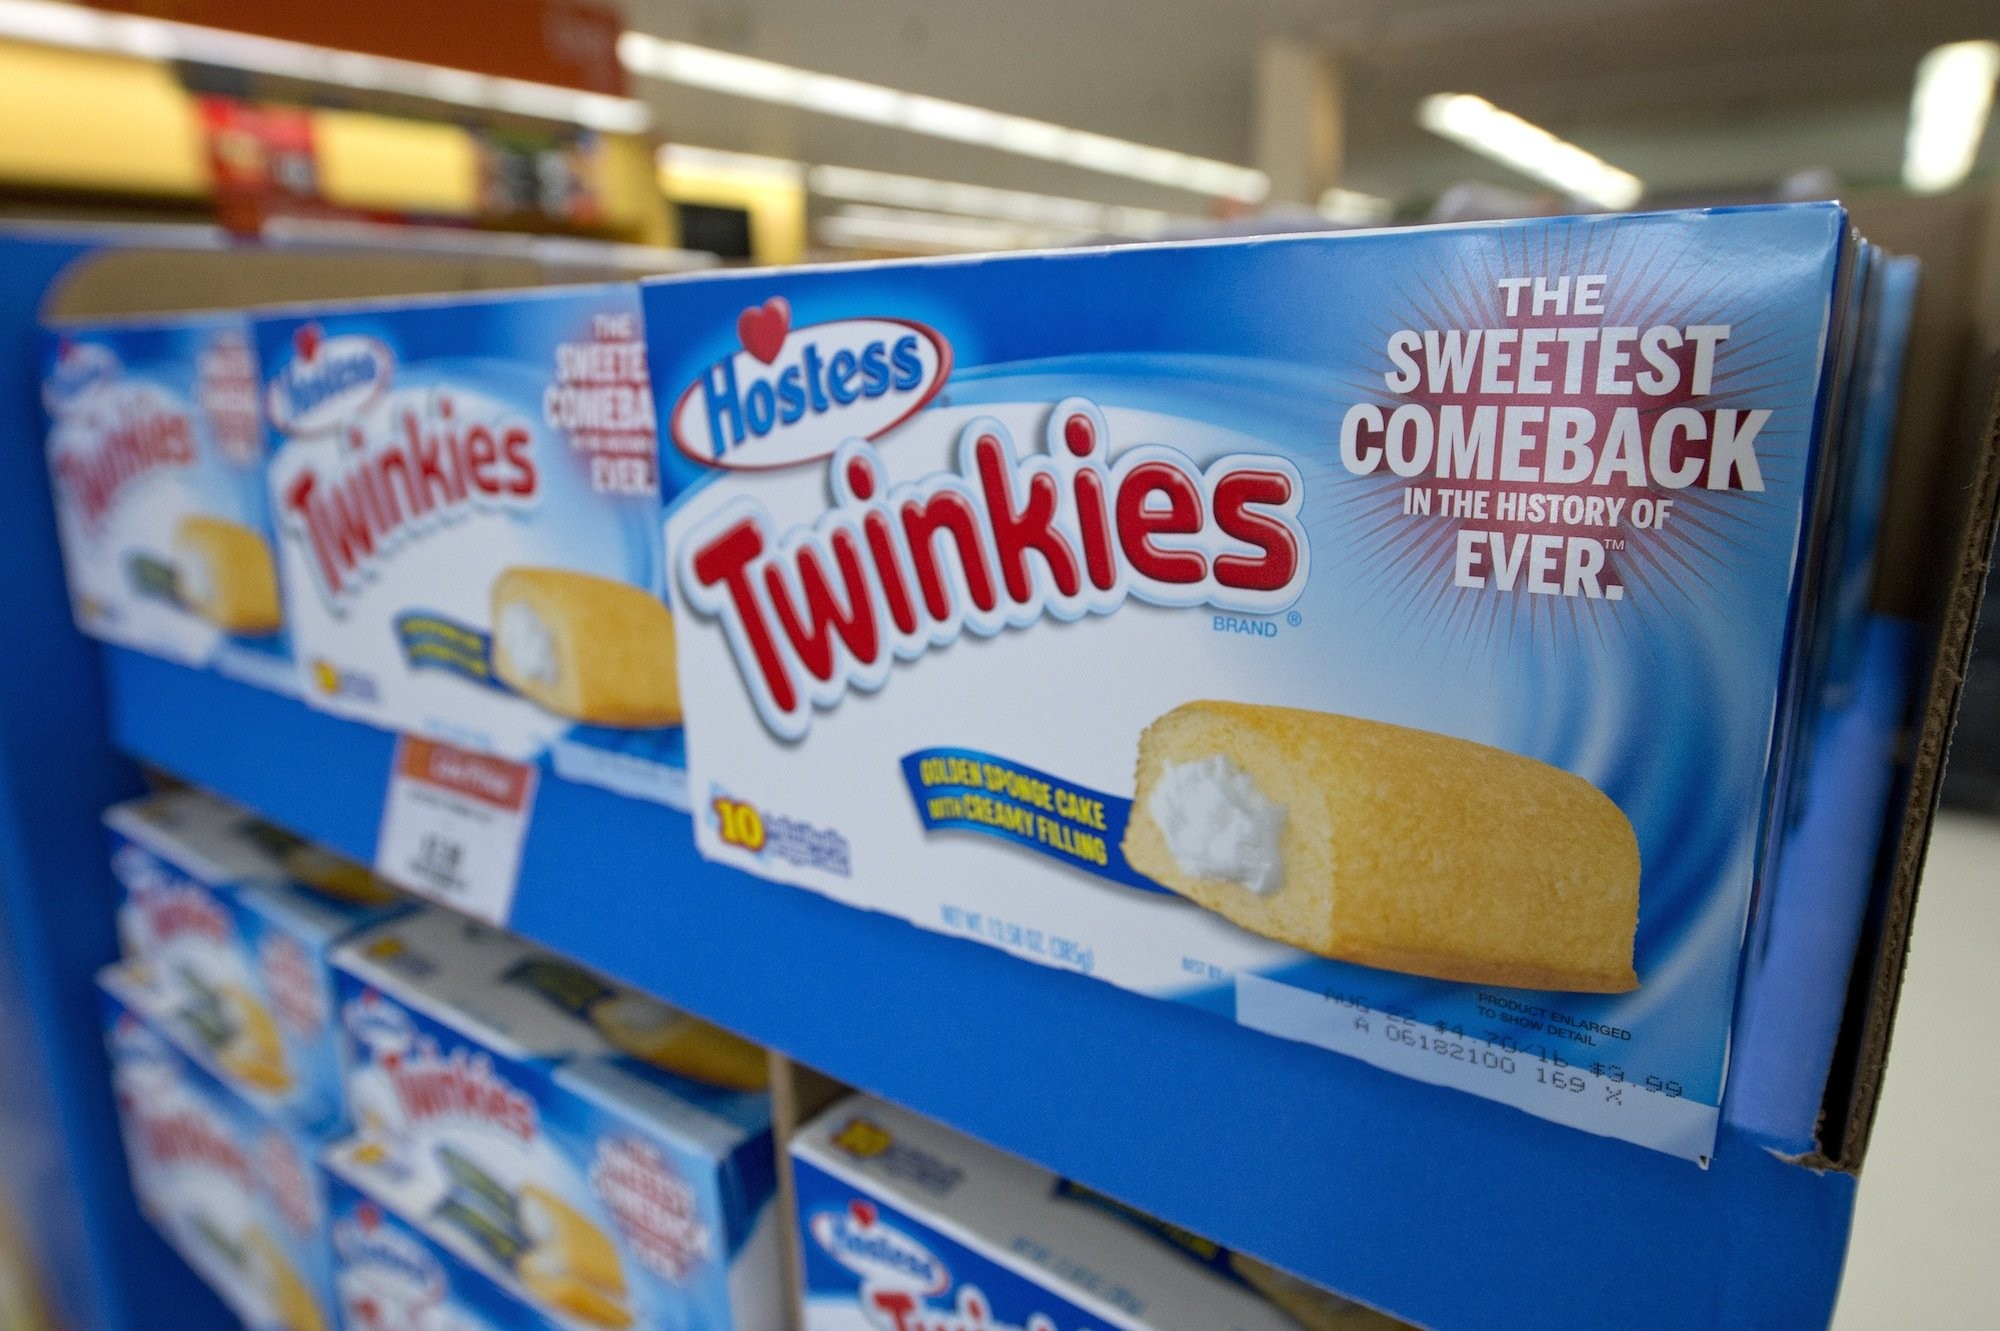 Twinkies riding high on America's healthy-eating trend